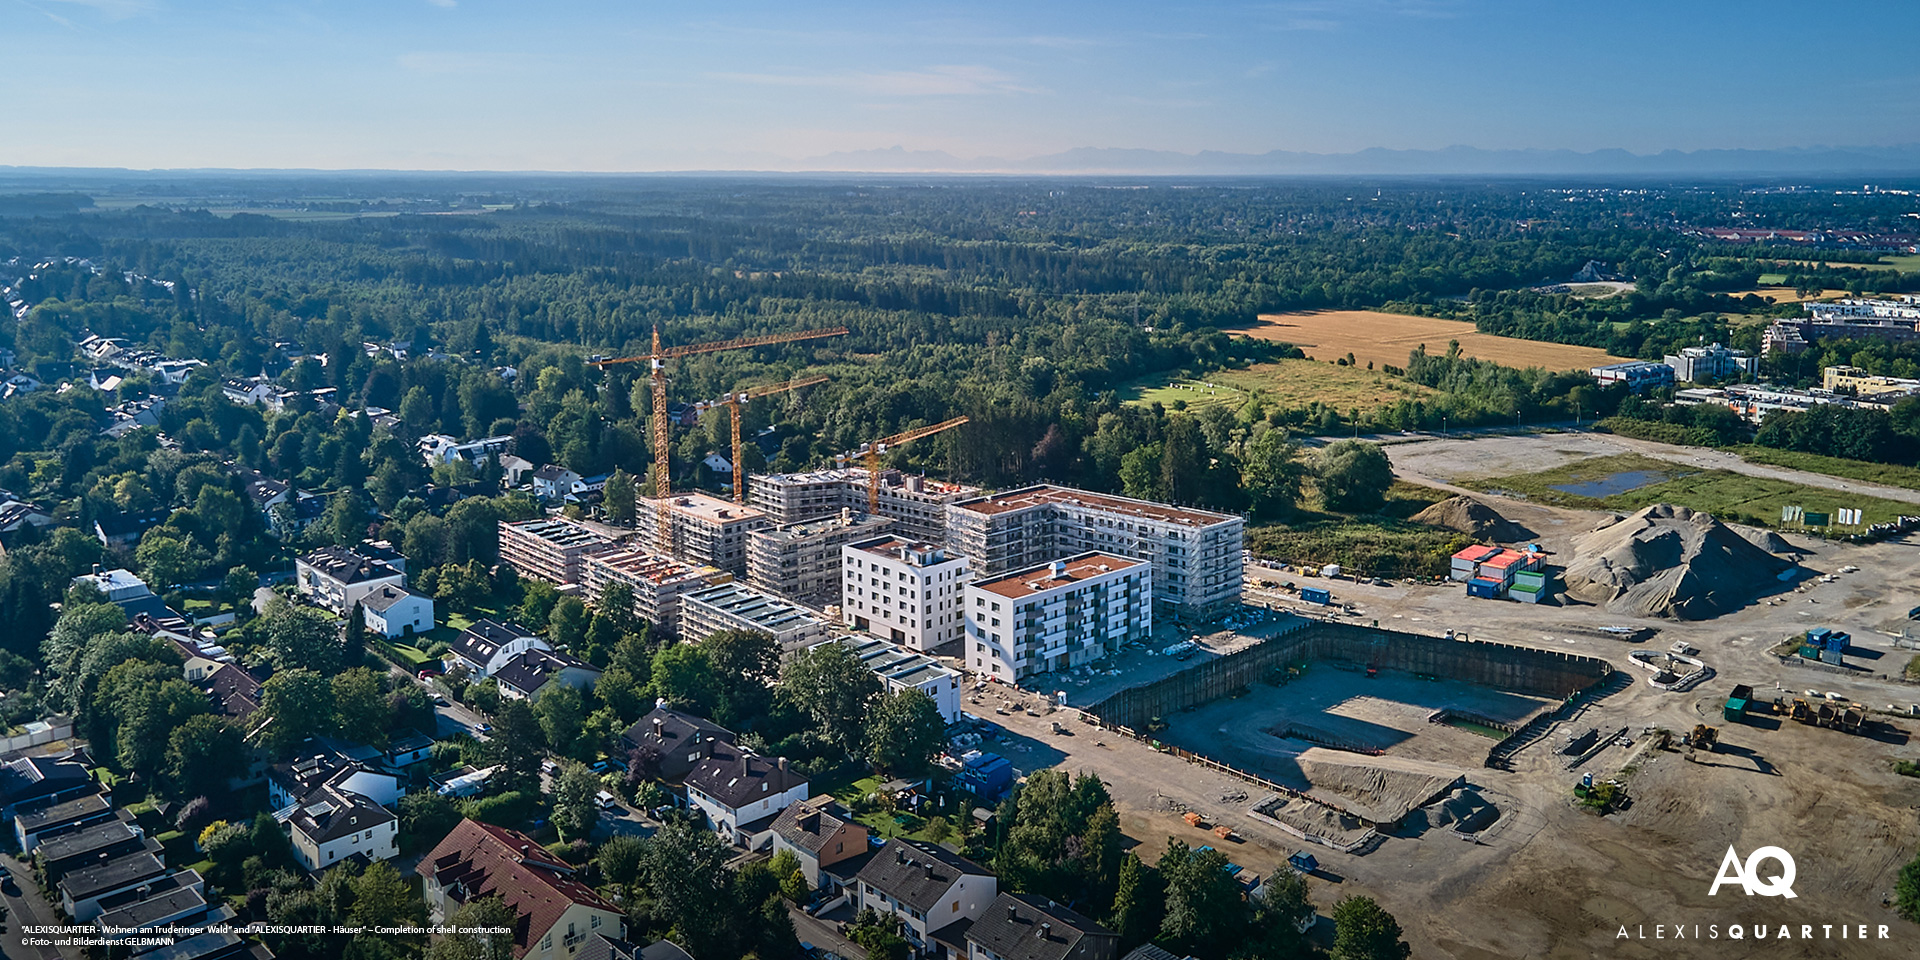 'ALEXISQUARTIER' in Munich-Perlach: Completion of shell construction